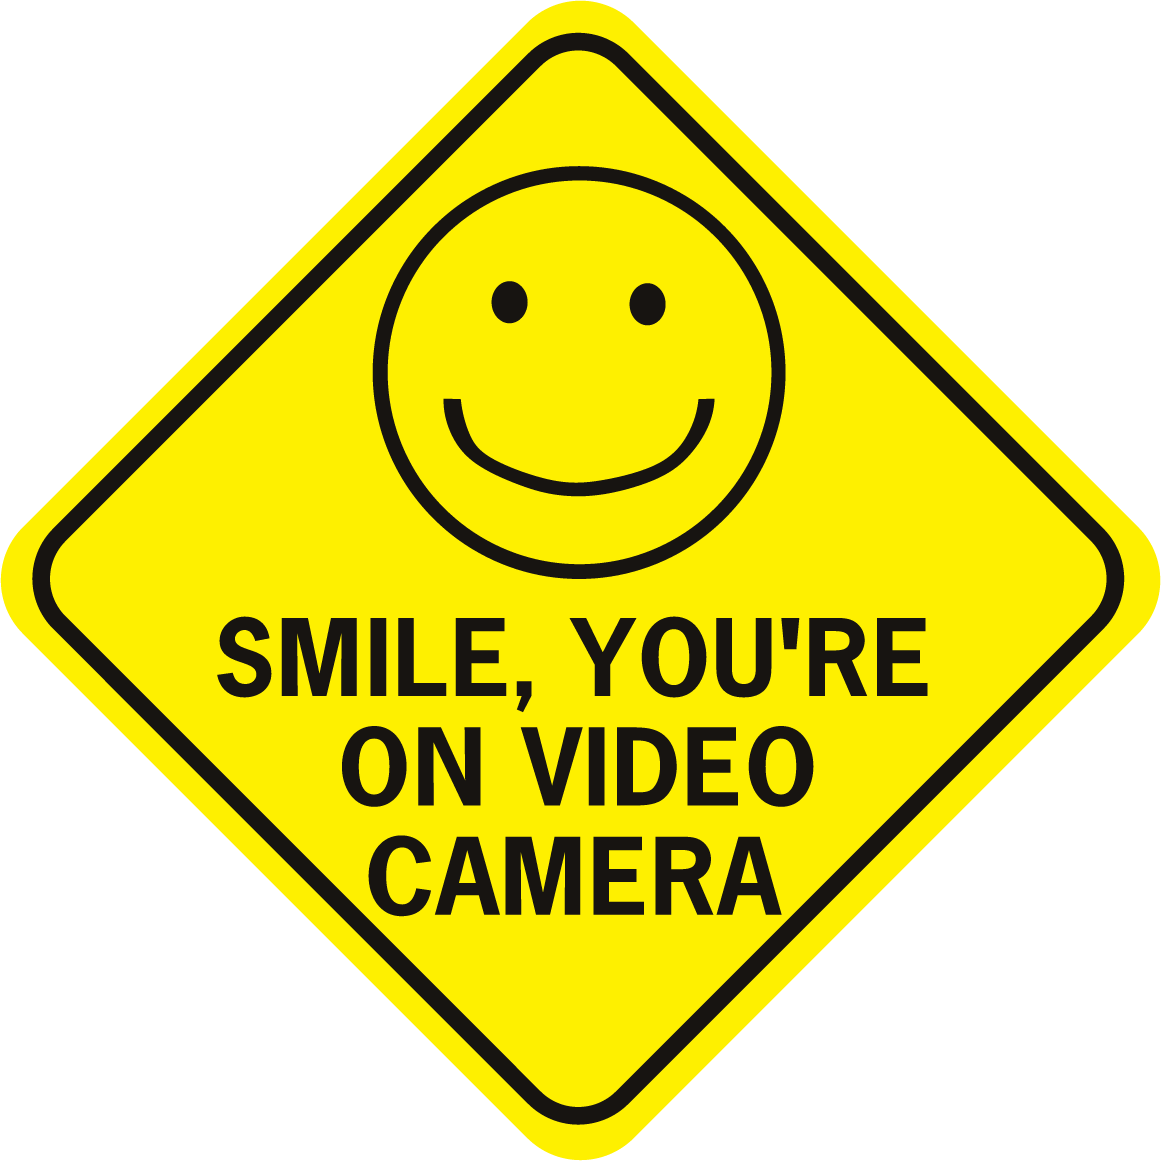 Smile You're On Video Camera W Happy Face Diamond